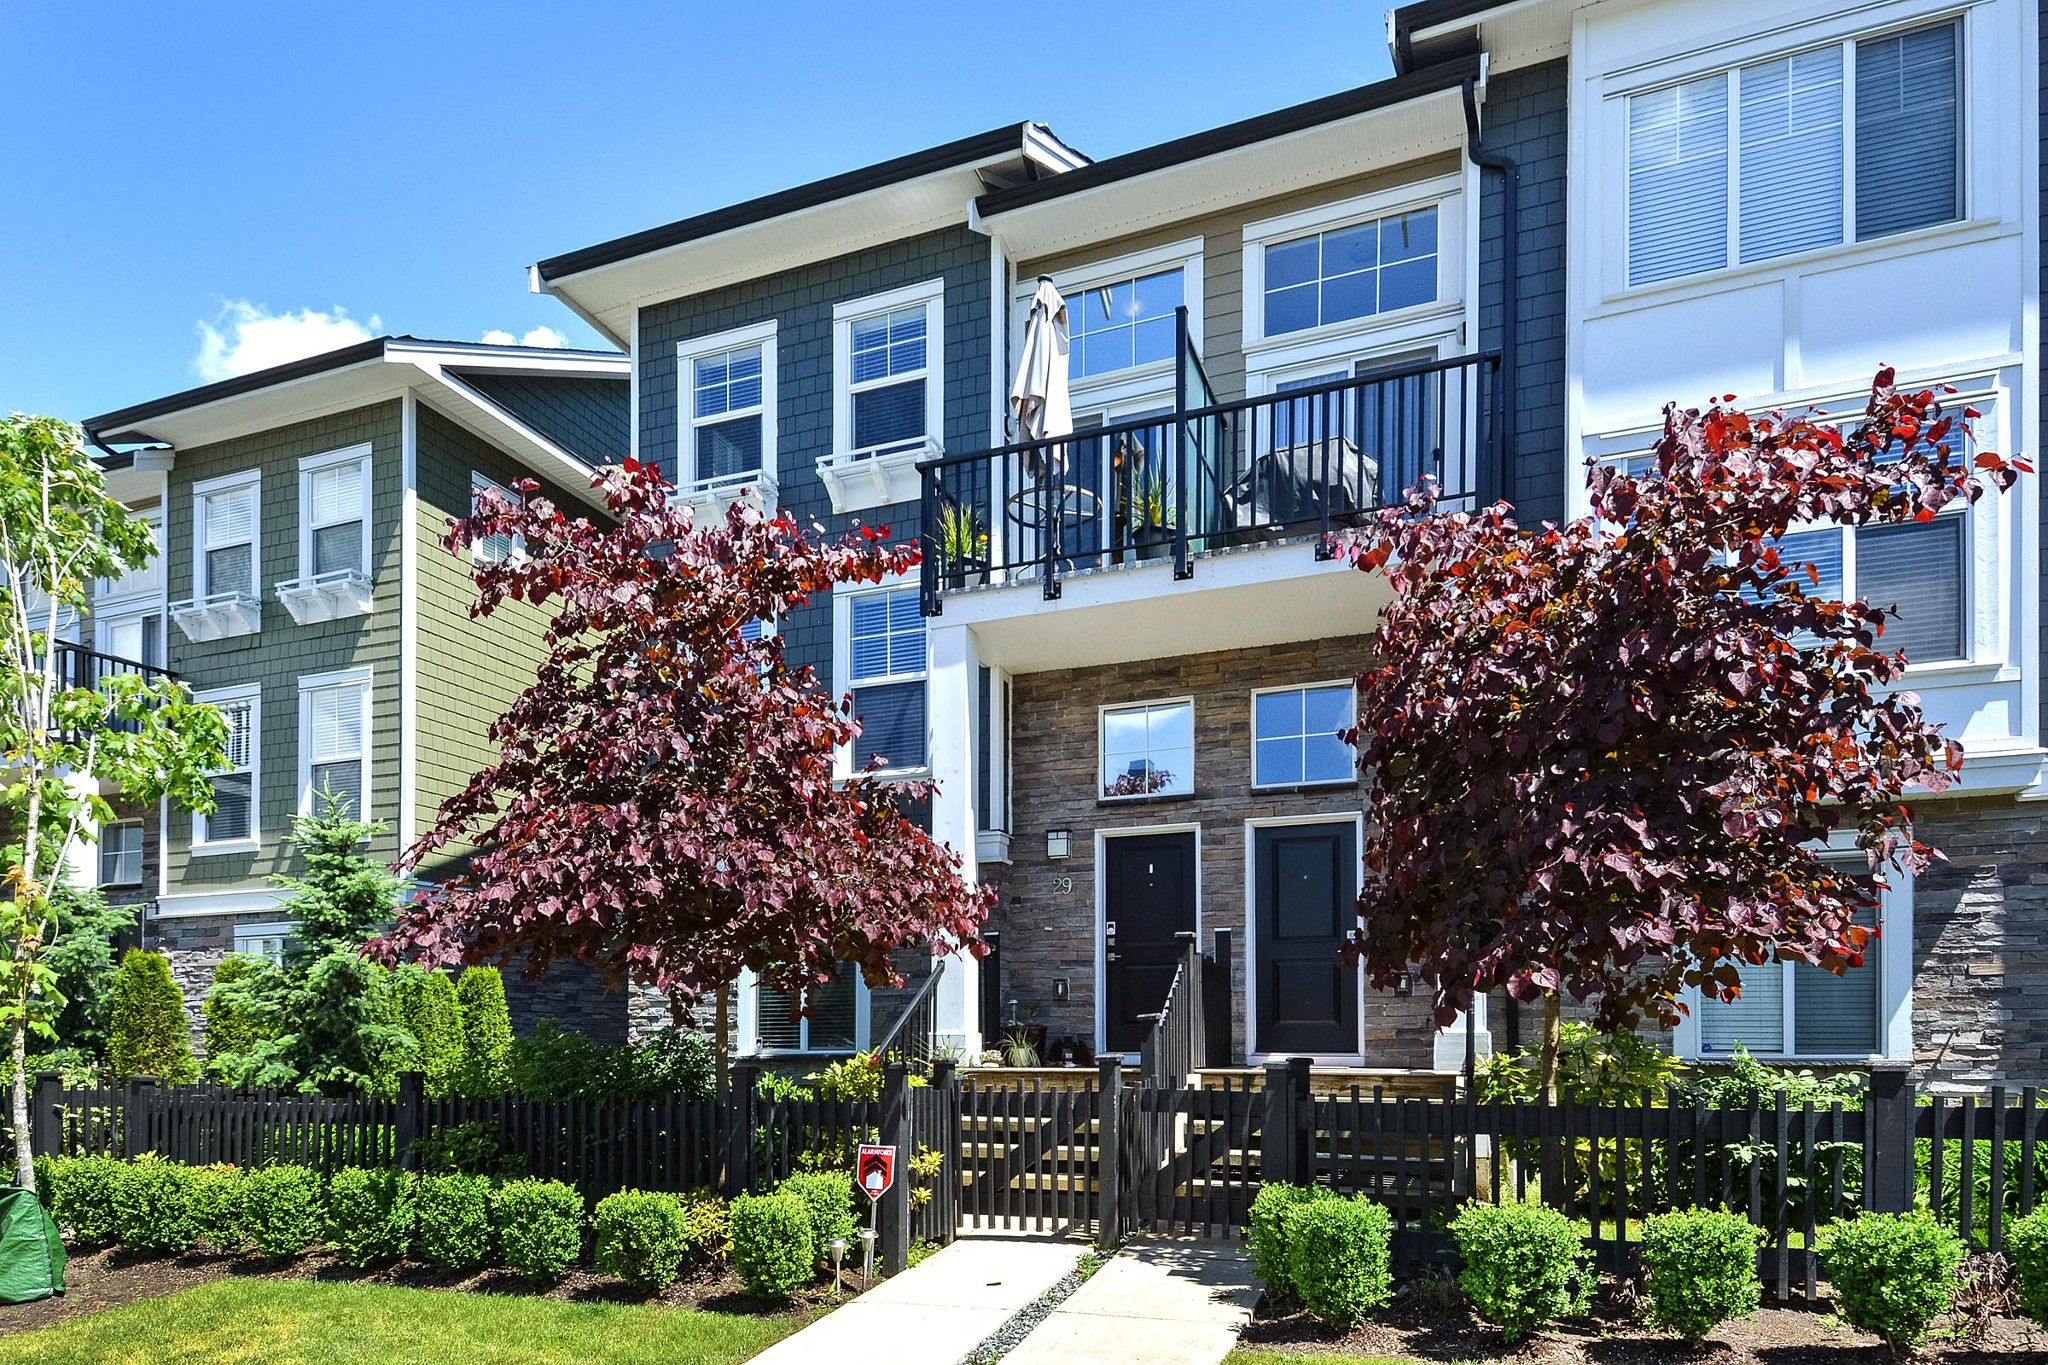 """Main Photo: 29 7686 209 Street in Langley: Willoughby Heights Townhouse for sale in """"KEATON"""" : MLS®# R2279137"""